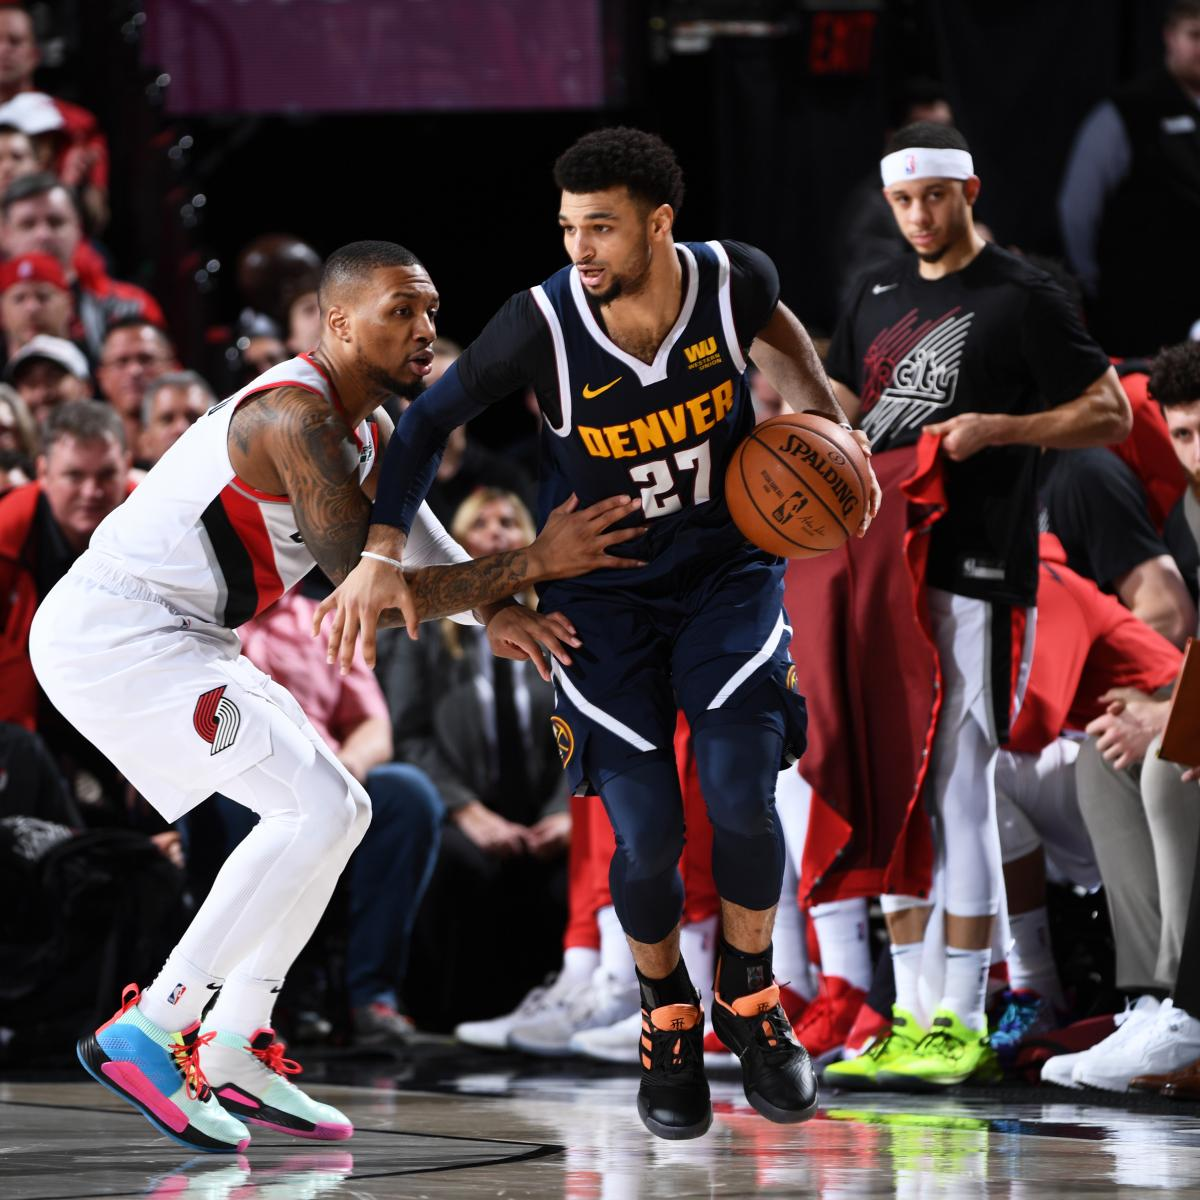 The Denver Nuggets tied their second-round playoff series against the Portland Trail Blazers at two games apiece with a 116-112 victory in Sunday's Game 4 at Moda Center...